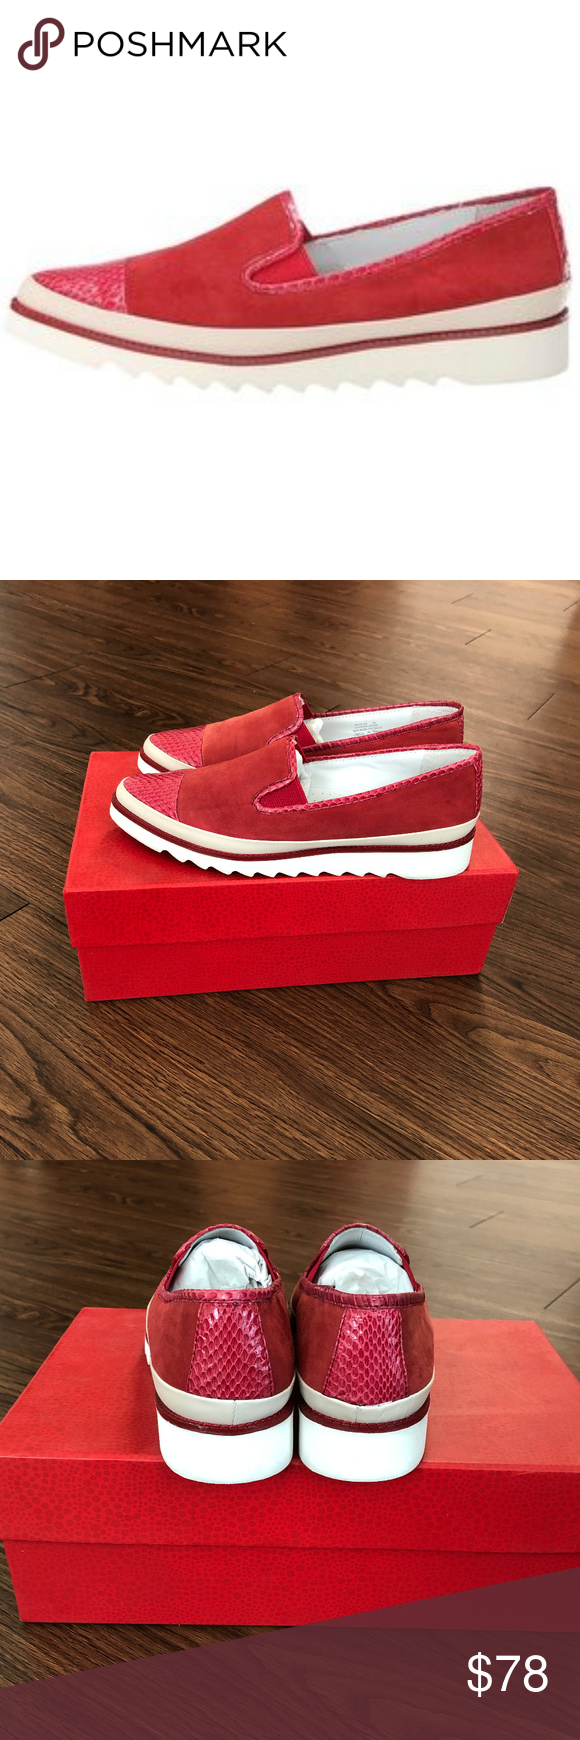 Donald J Pliner Beliz Loafers Size 7 Donald J Pliner Beliz Loafers Size 7 M Color Red Have Been Worn Twice In Clothes Design Printed Leather Fashion Tips